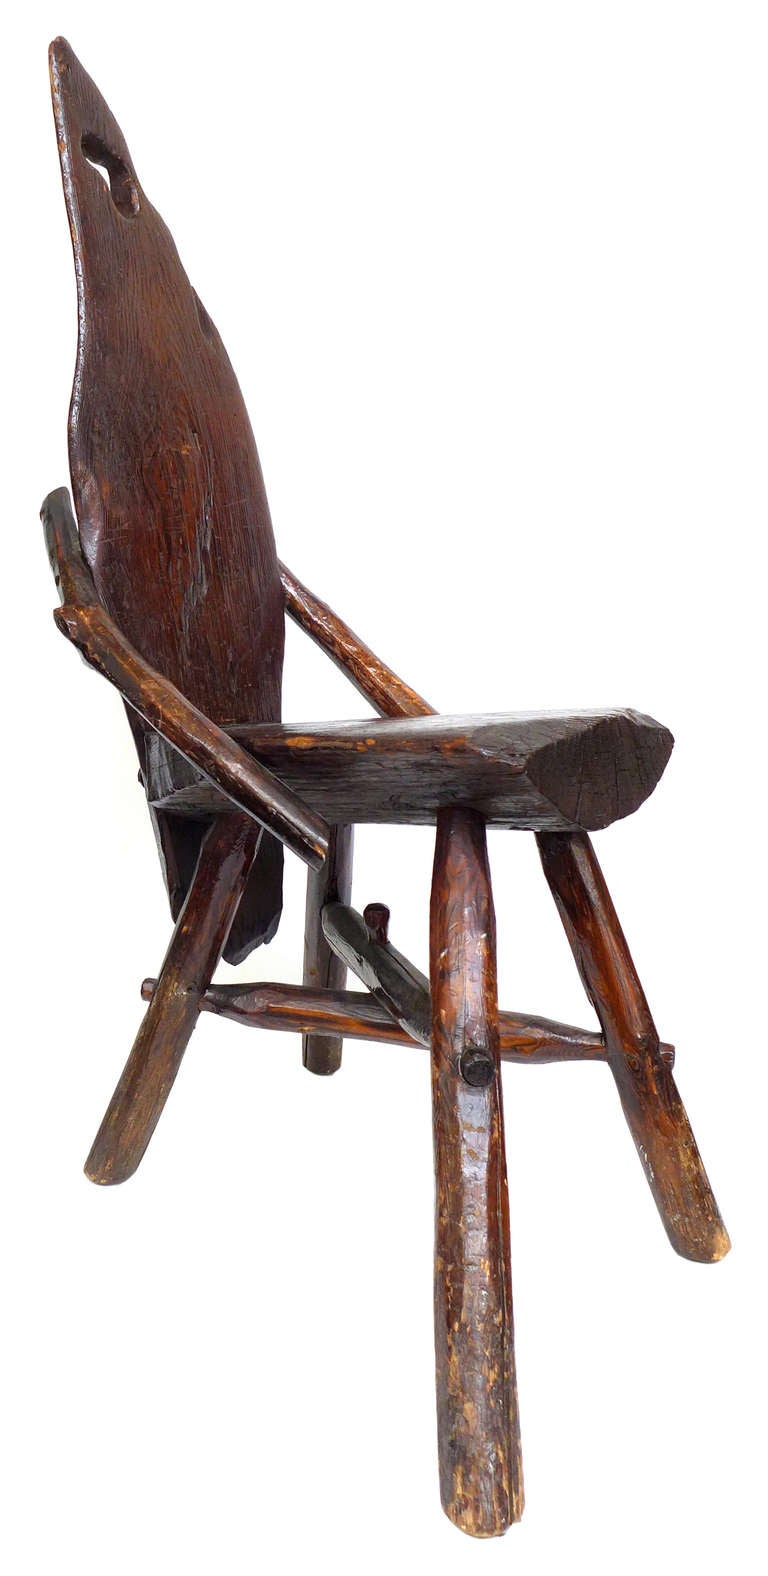 Primitive Wood Bough And Slab Chair At 1stdibs